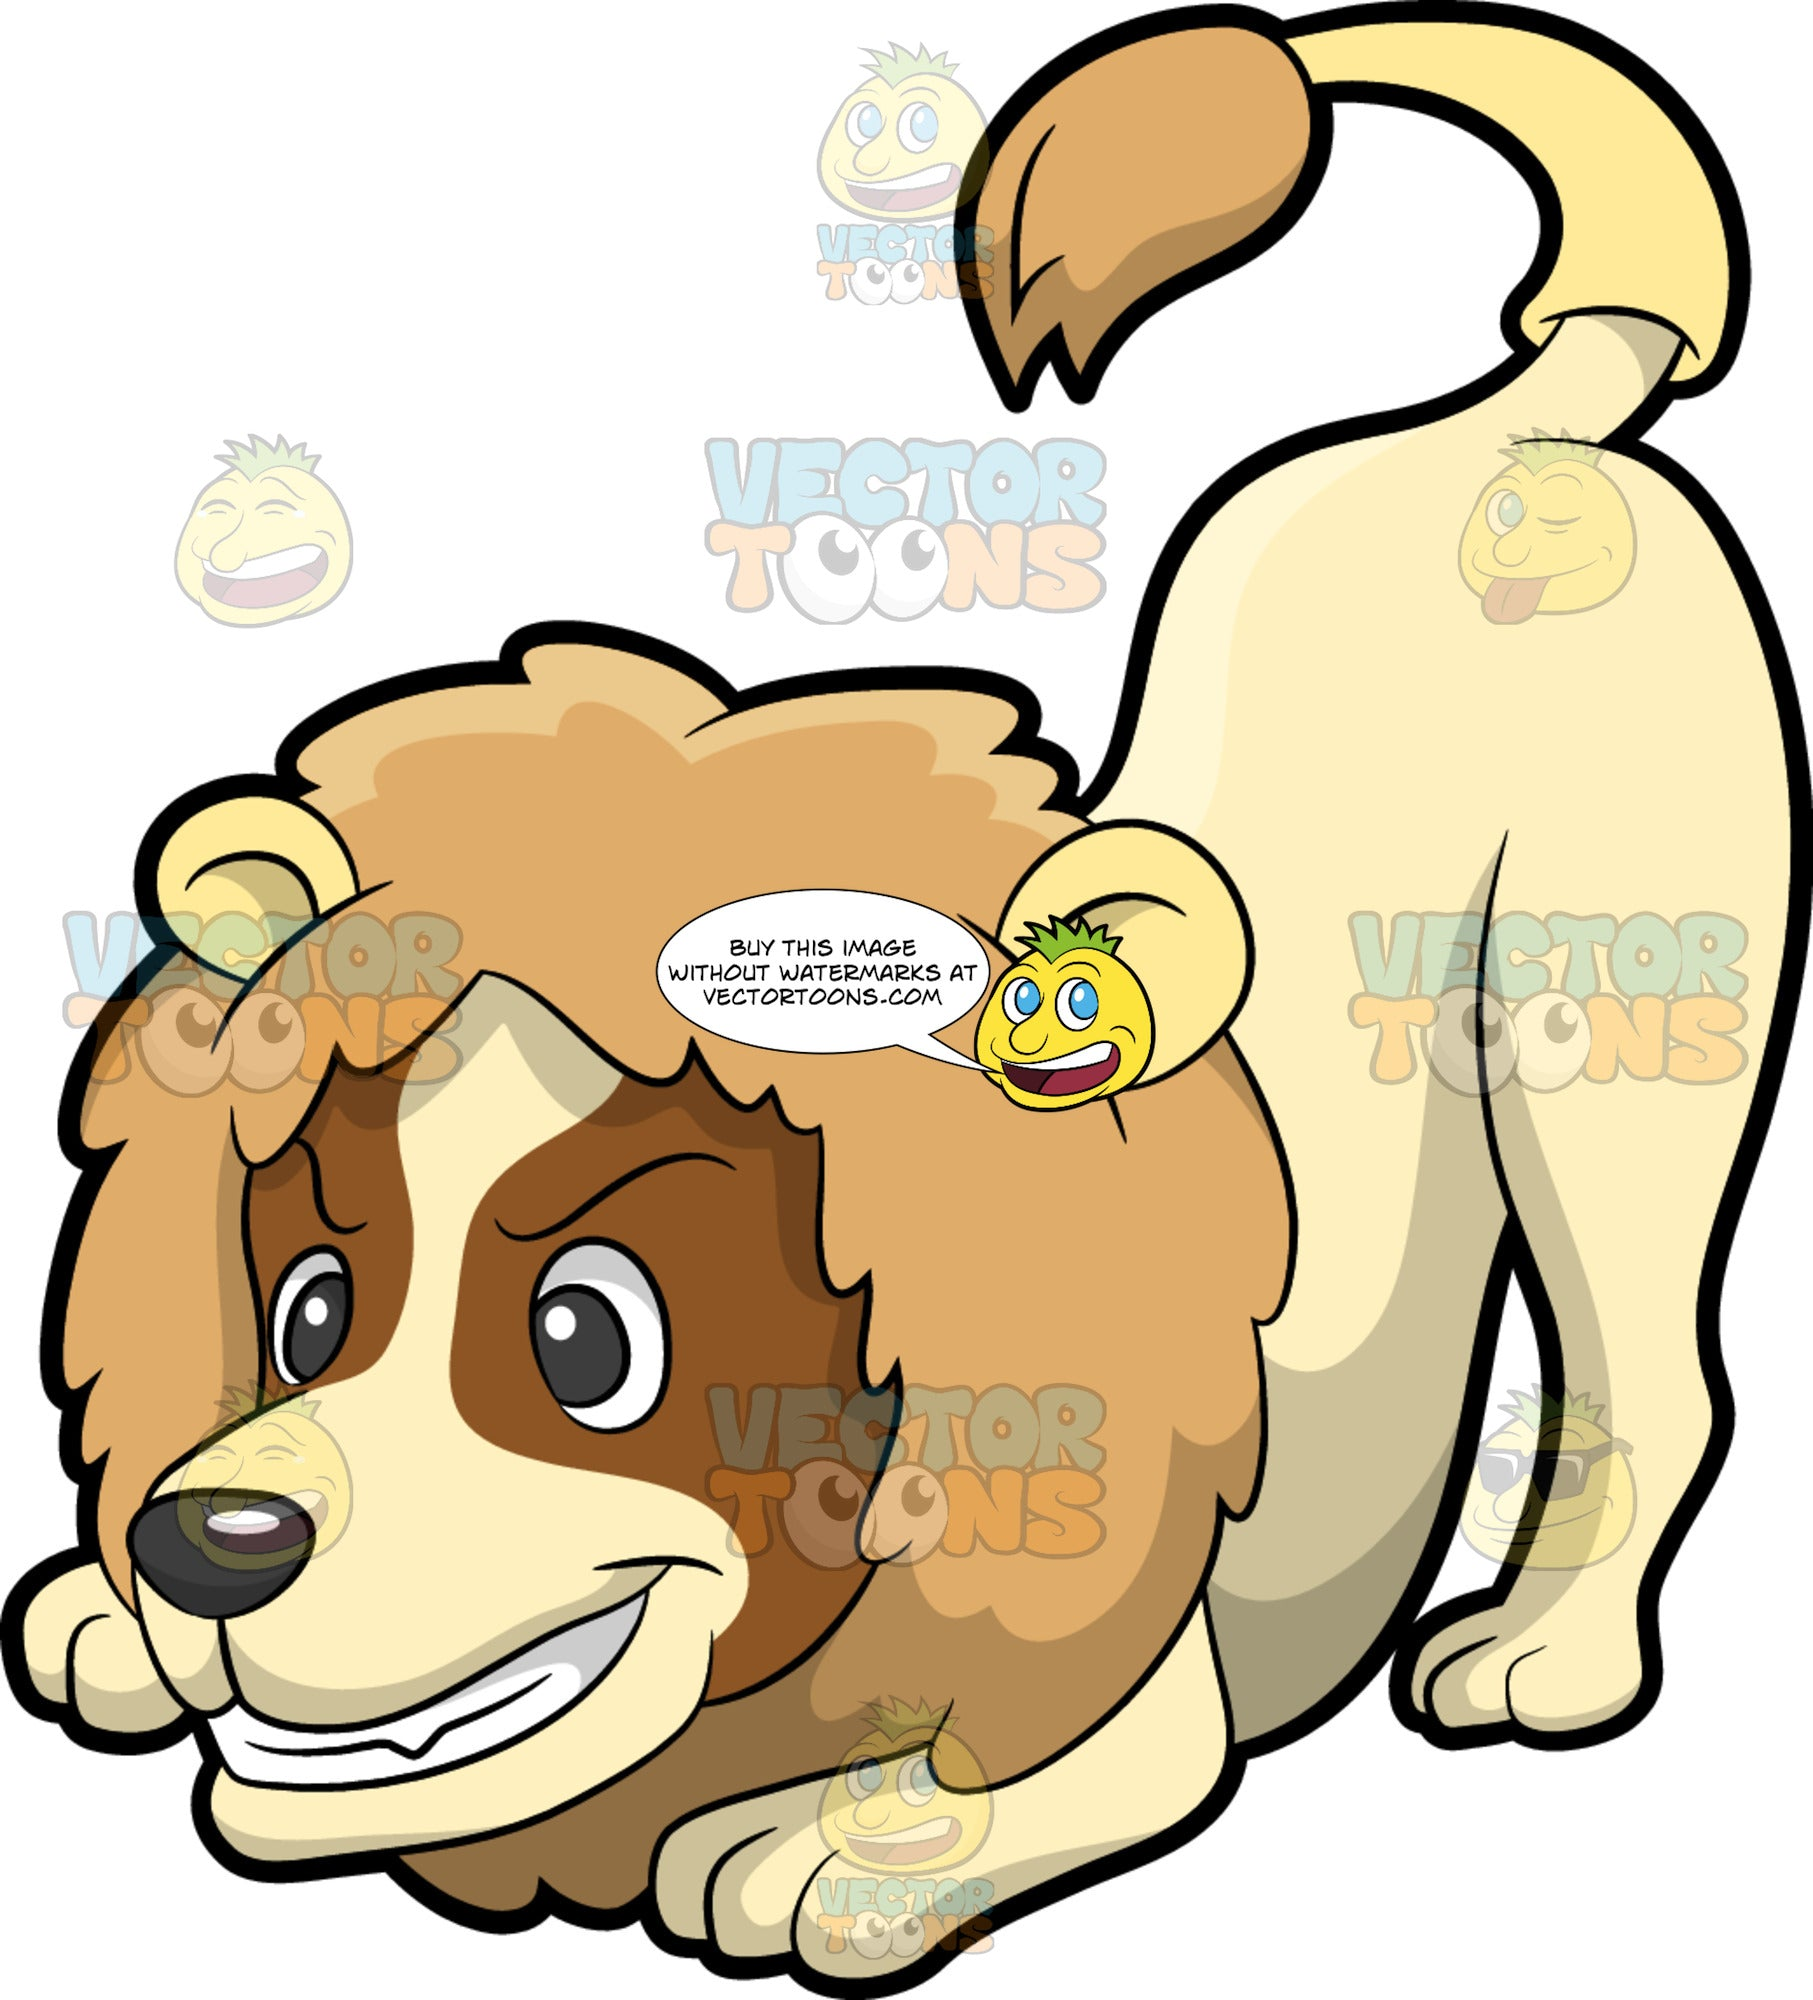 A Dog In A Mighty Lion Costume. An adorable dog with cream colored coat, brown markings on its face, grits its teeth while wearing a lion costume with fake light brown mane and tail